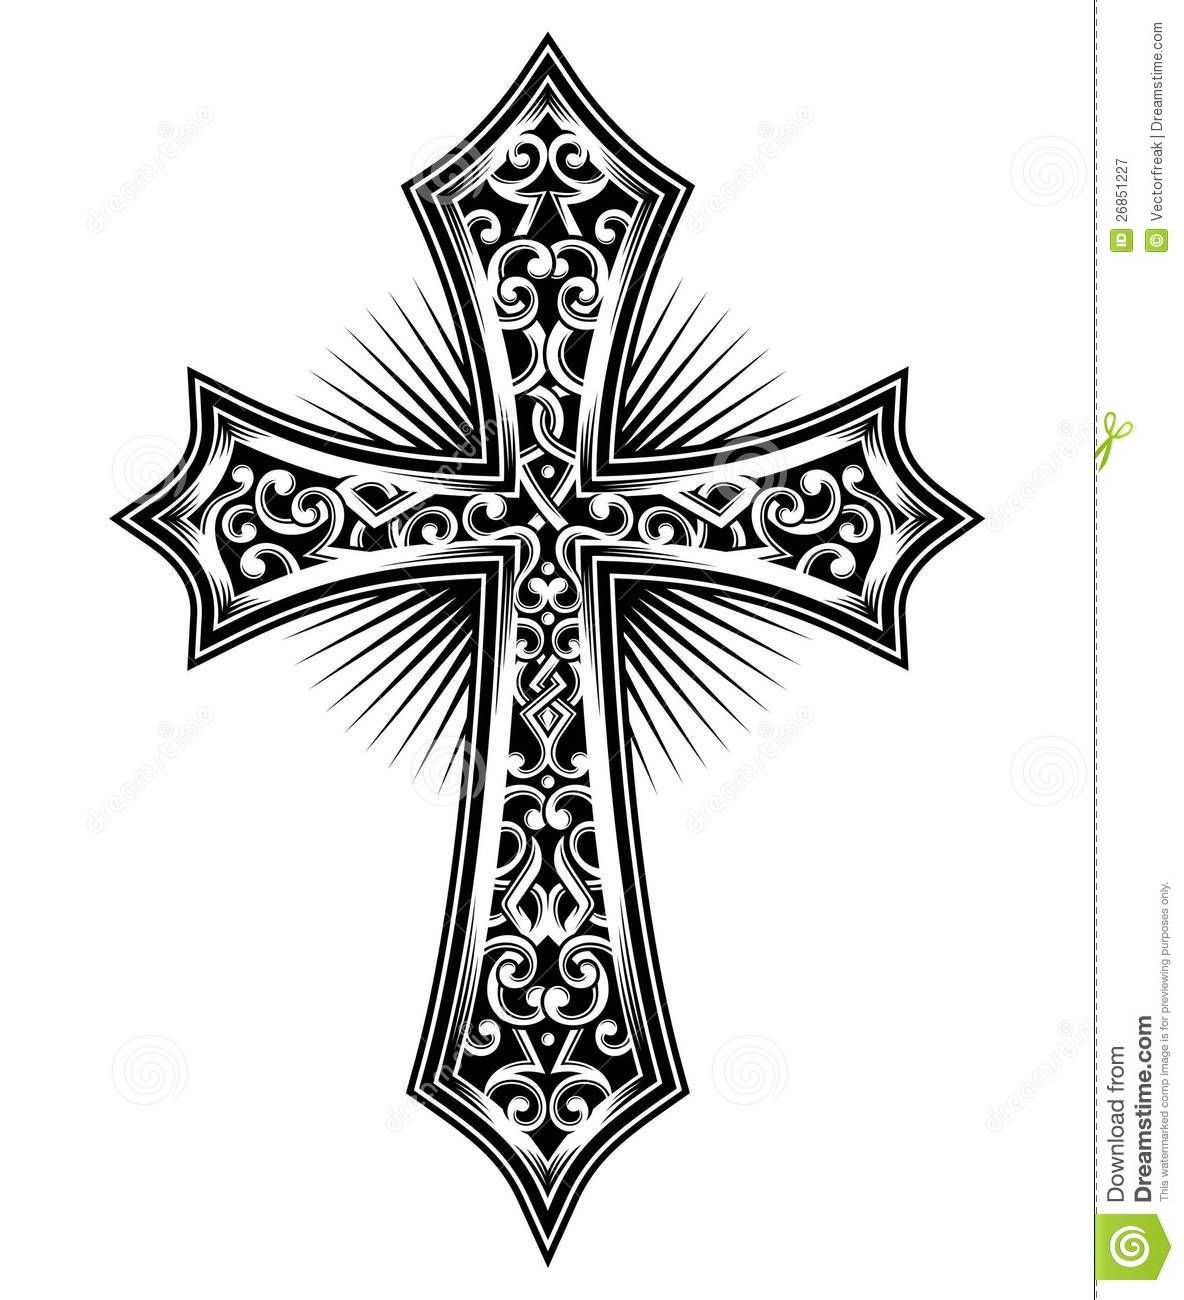 simple christian cross designs - Google Search   Projects ...